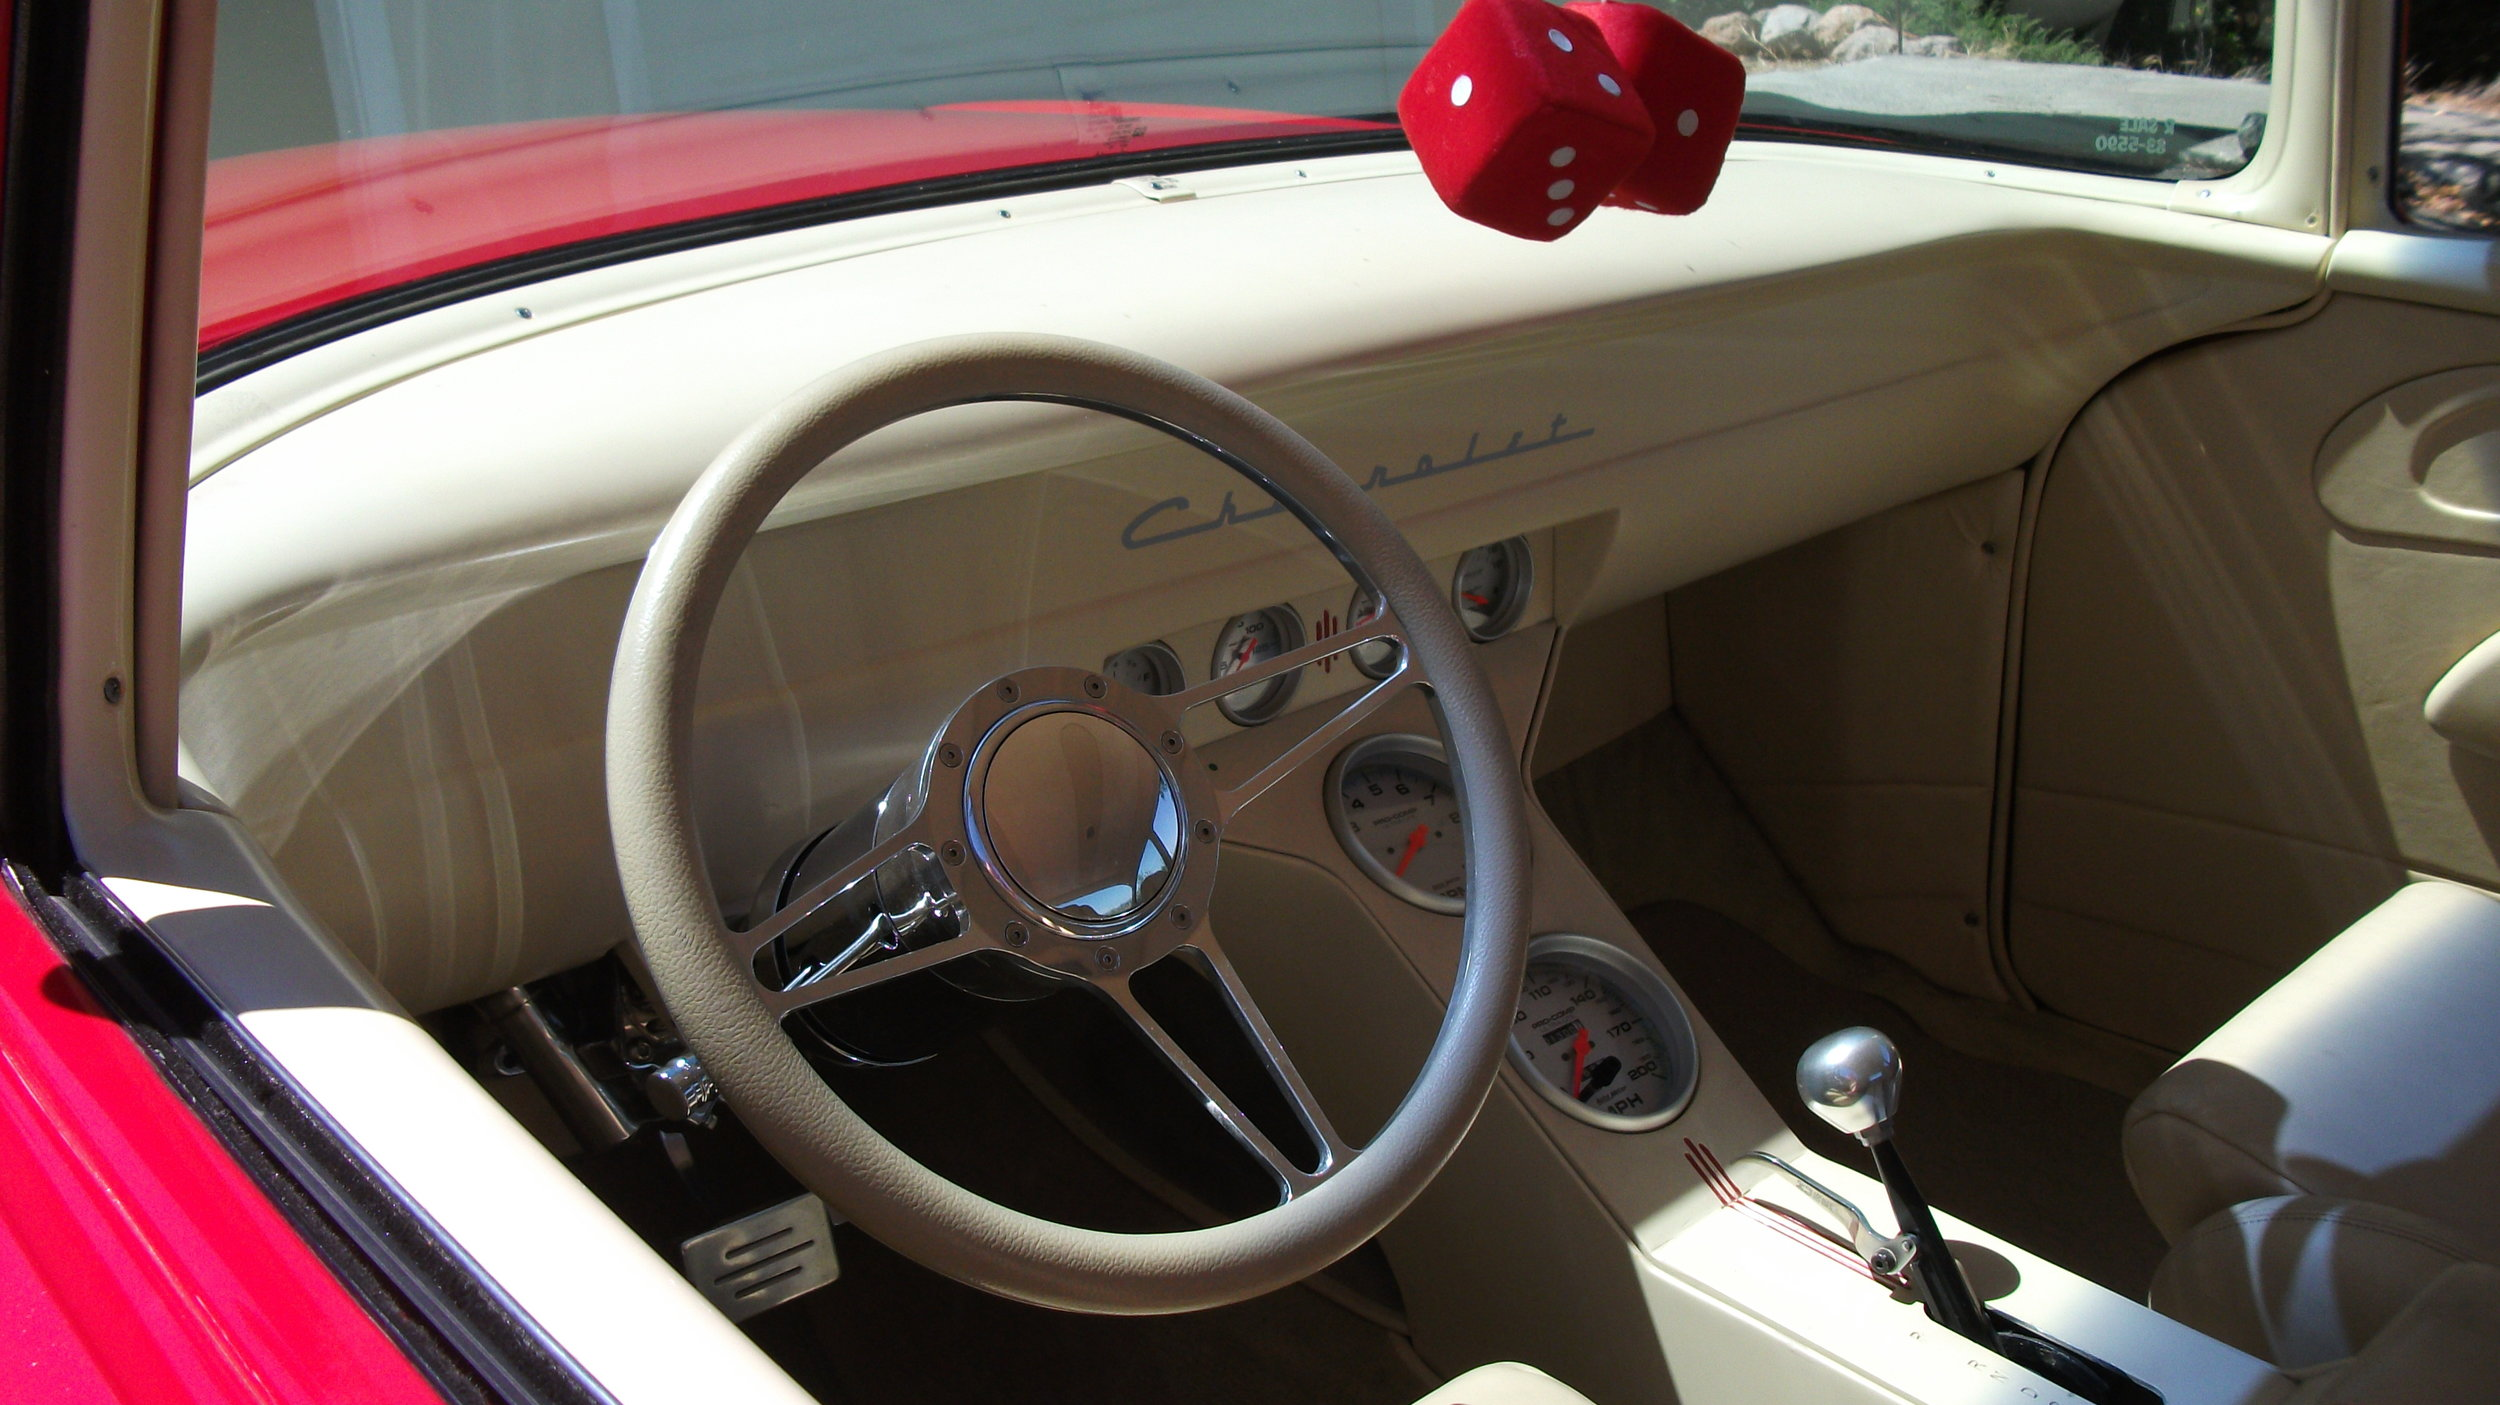 1955 chevy pictures 043.JPG